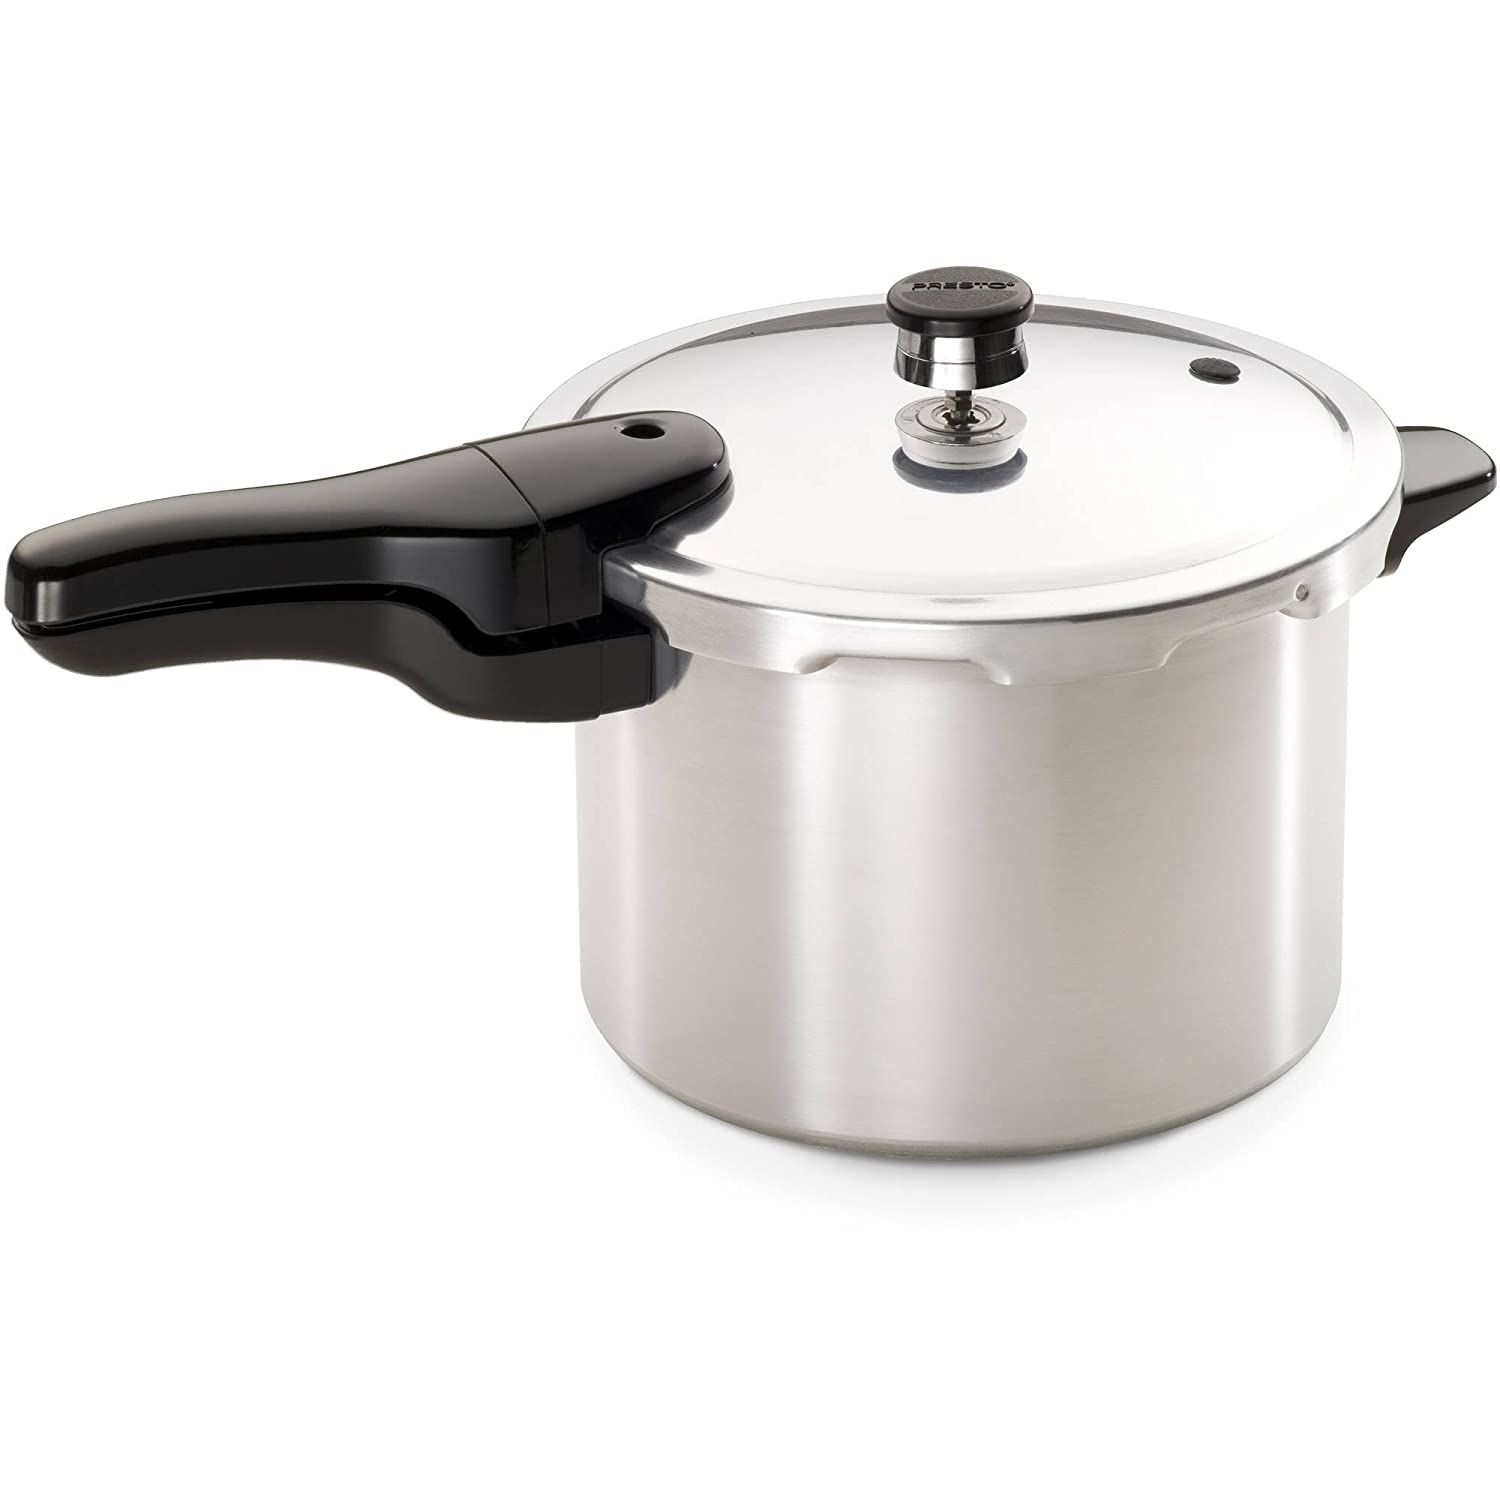 Presto Pressure Cooker 6-Quart Heavy-Gauge Aluminum with Helper Handle and Recipe Book Included